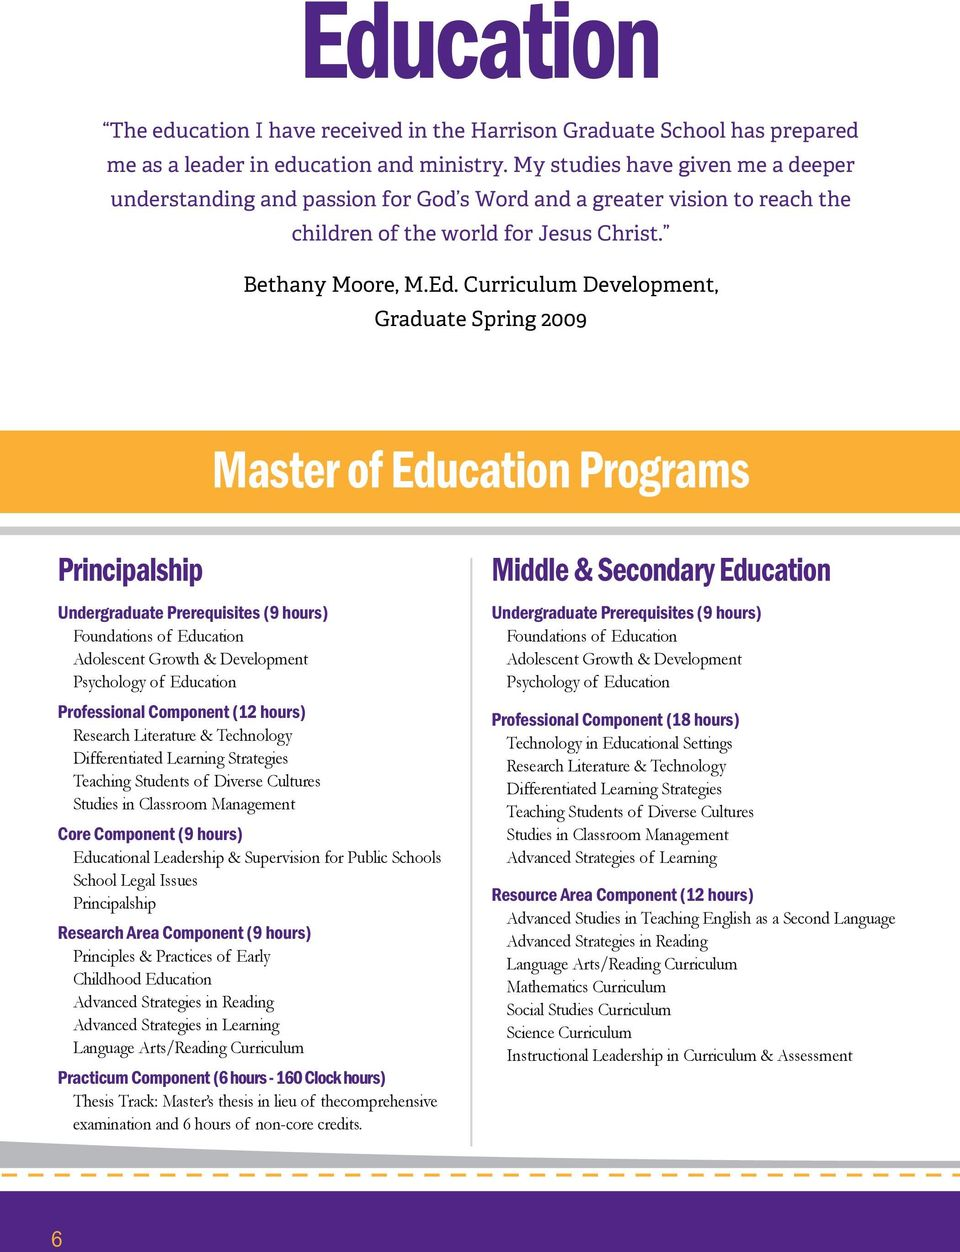 Curriculum Development, Graduate Spring 2009 Master of Education Programs Principalship Undergraduate Prerequisites (9 hours) Foundations of Education Adolescent Growth & Development Psychology of